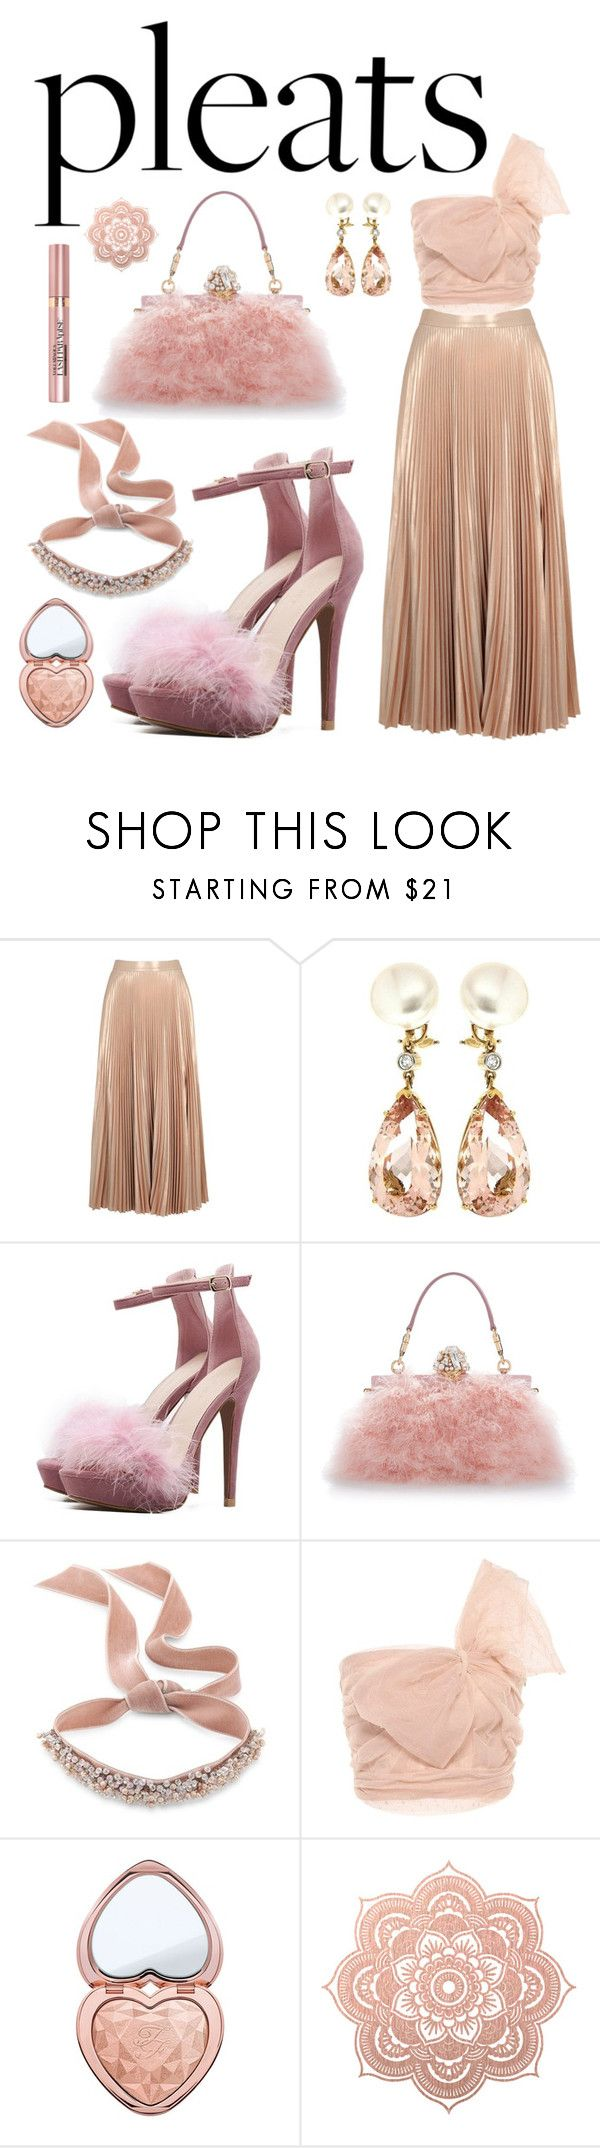 """Blush All Night"" by katebillingsley on Polyvore featuring A.L.C., Valentin Magro, Dolce&Gabbana, Fallon, RED Valentino, L'Oréal Paris, Too Faced Cosmetics, Pink, evening and pleats"